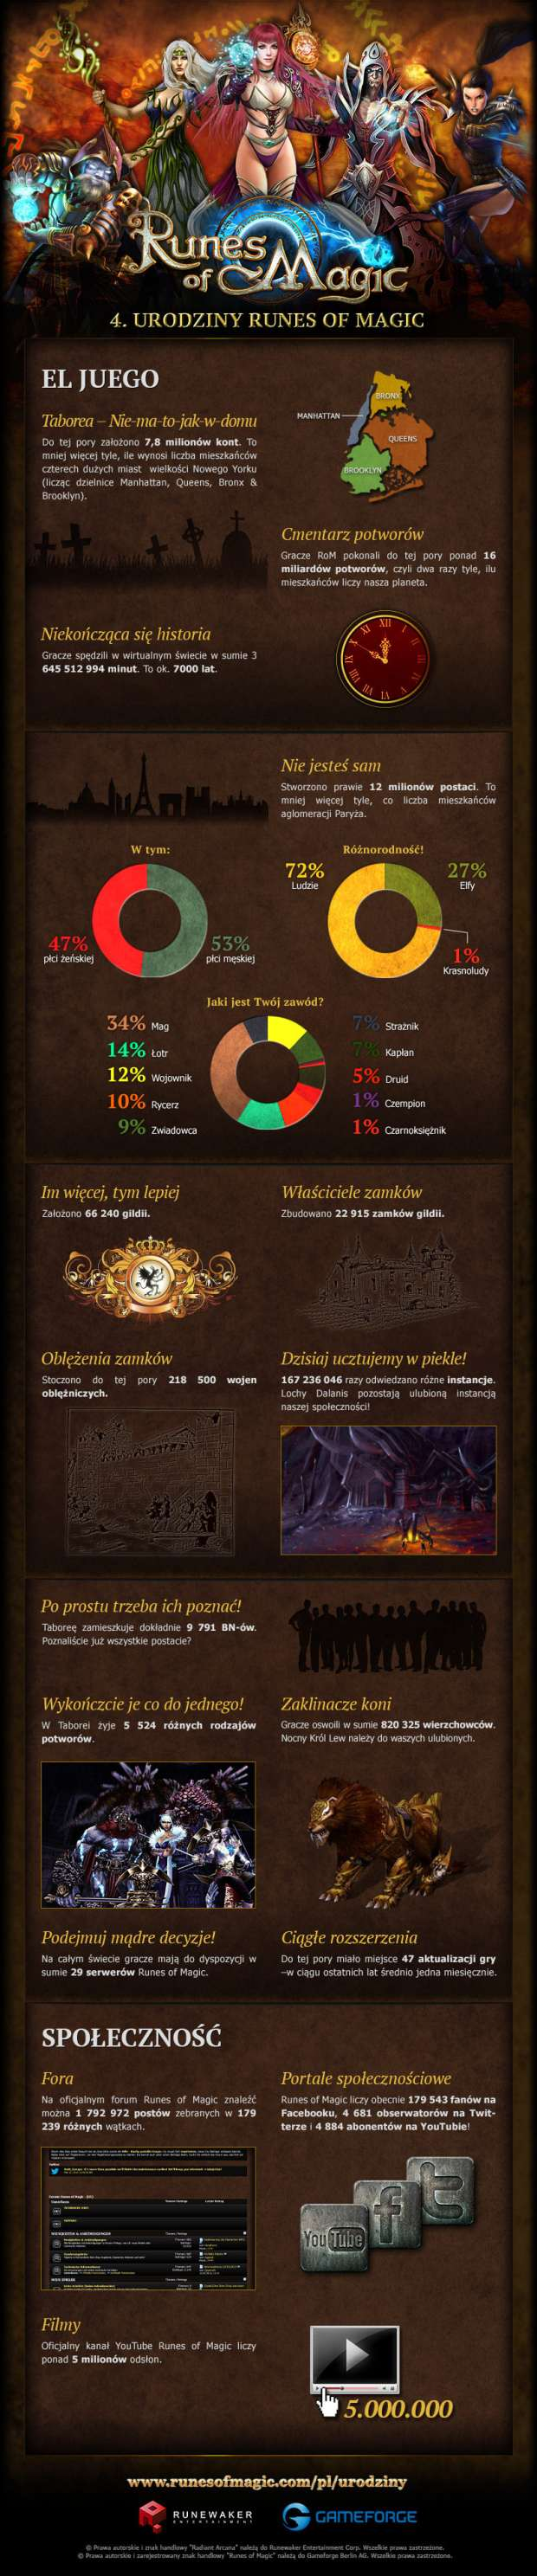 Runes of Magic Info